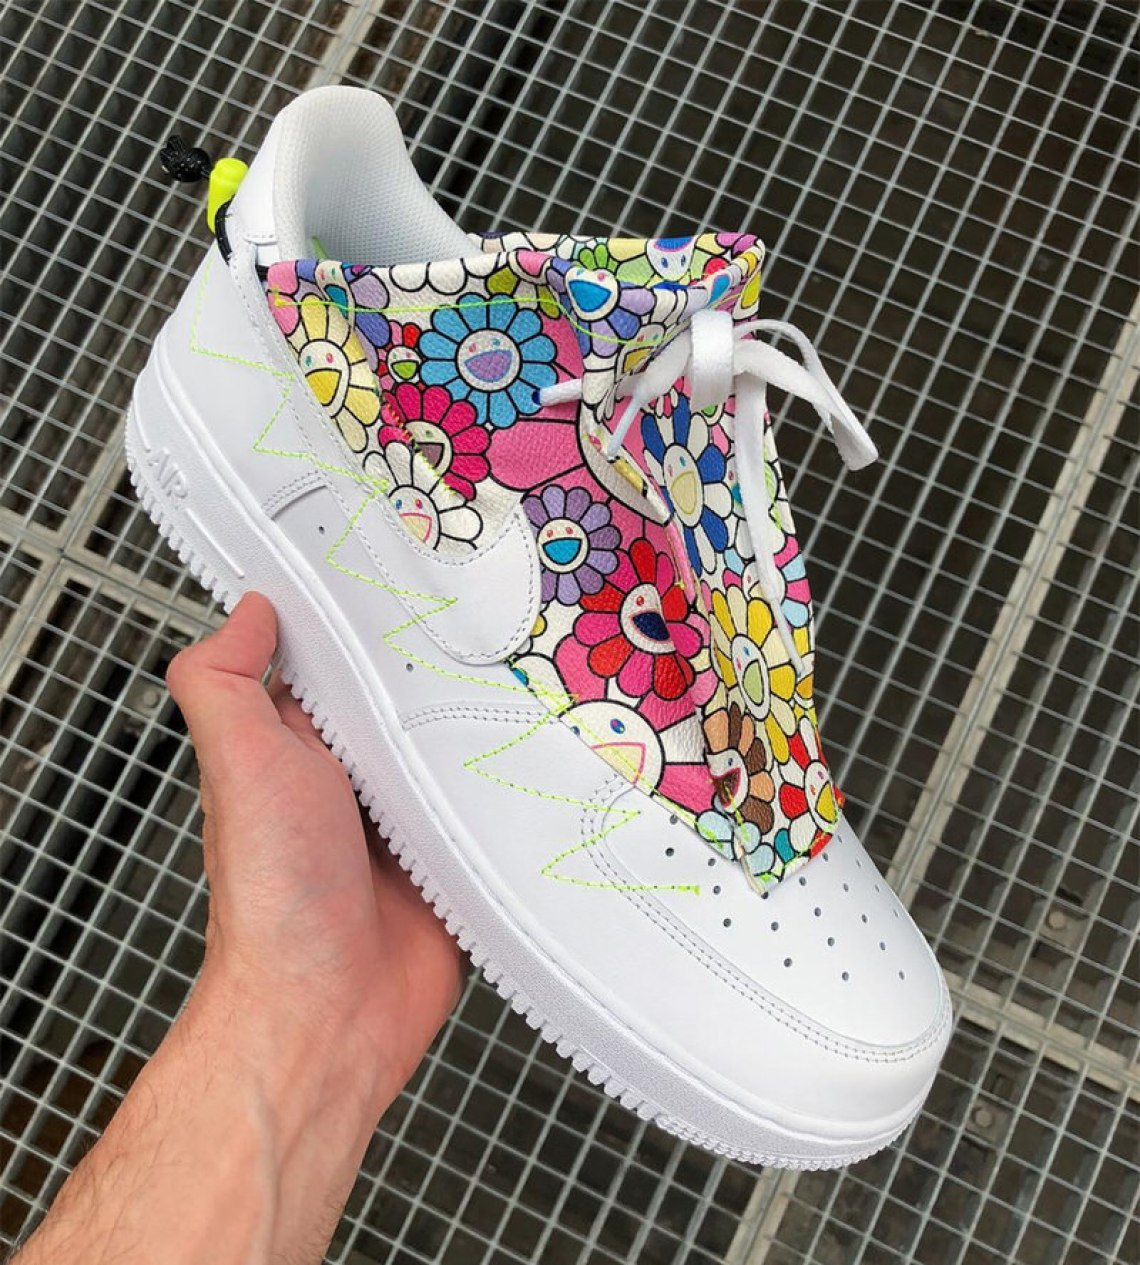 e0145f896619 Takashi Murakami Wears Custom Air Force 1 During Paris Fashion Week